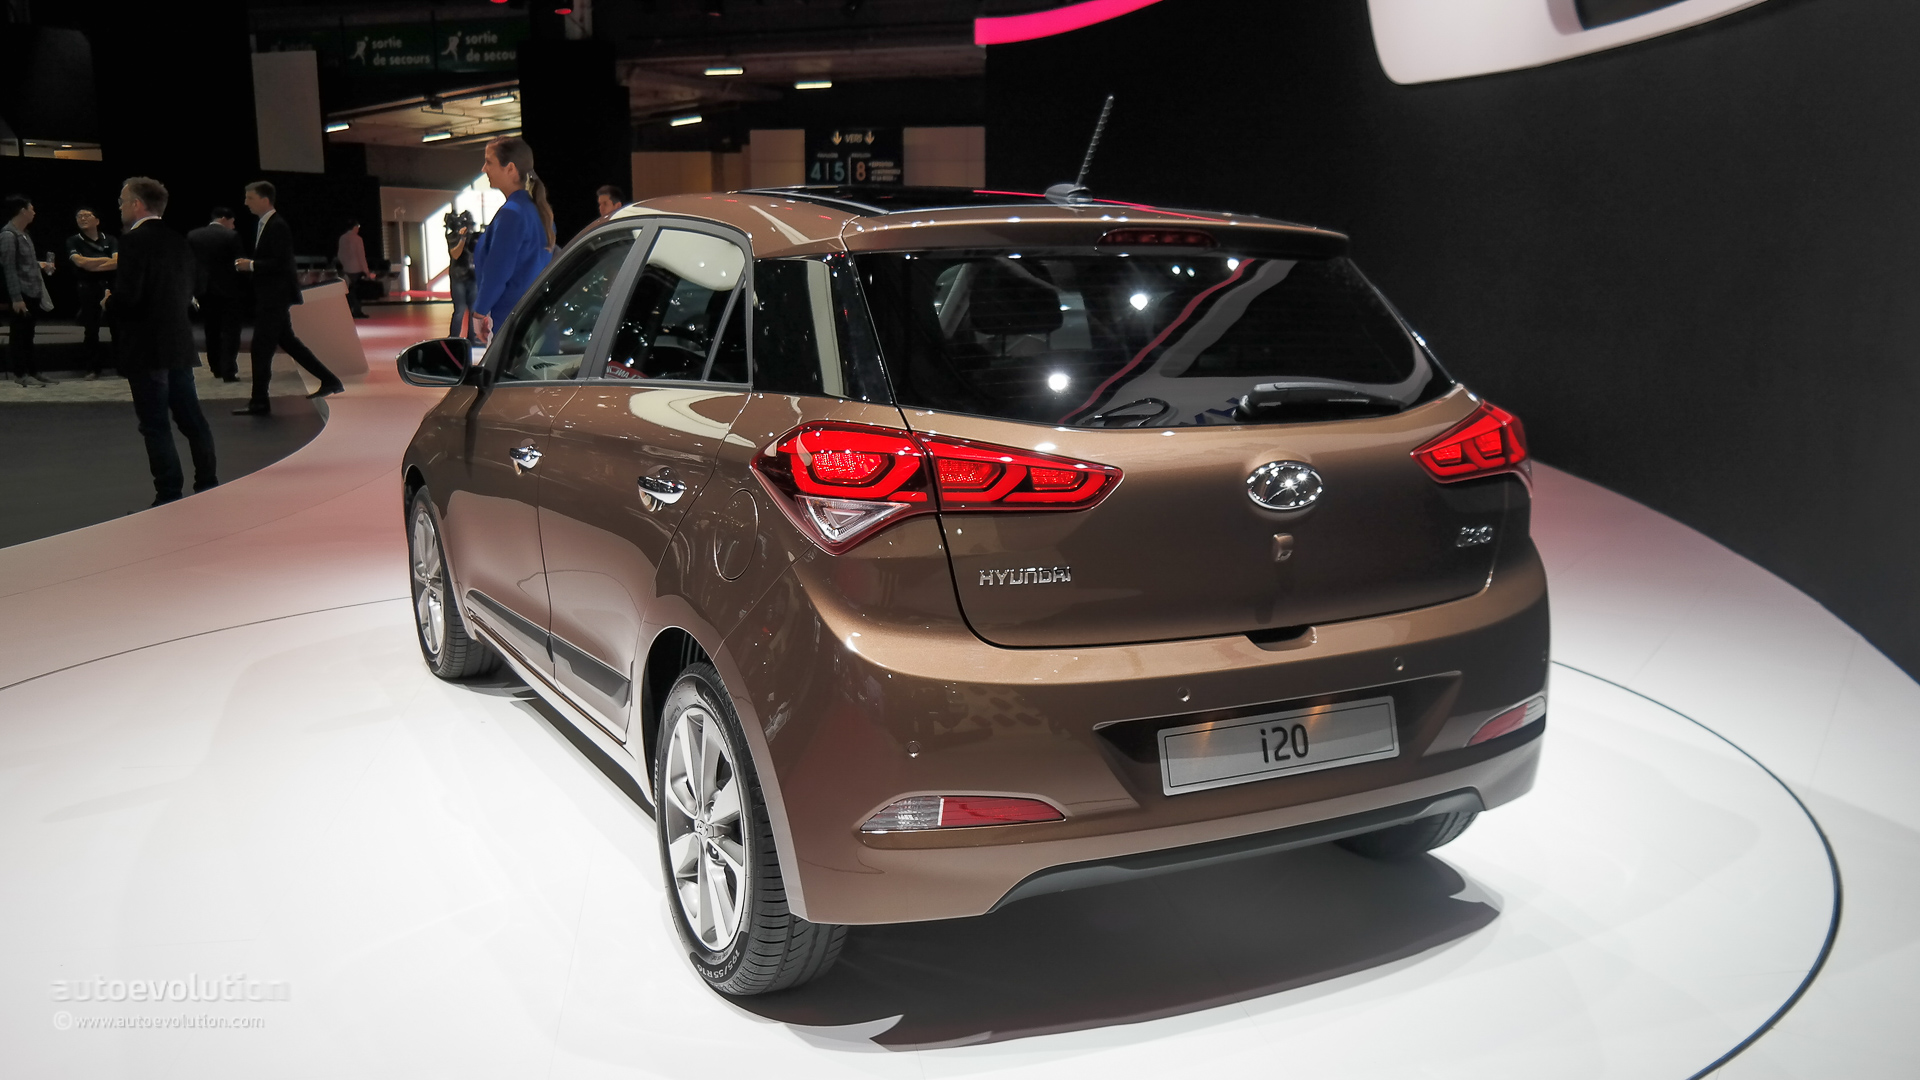 hyundai i20 pops out at paris motor show 2014 live photos. Black Bedroom Furniture Sets. Home Design Ideas